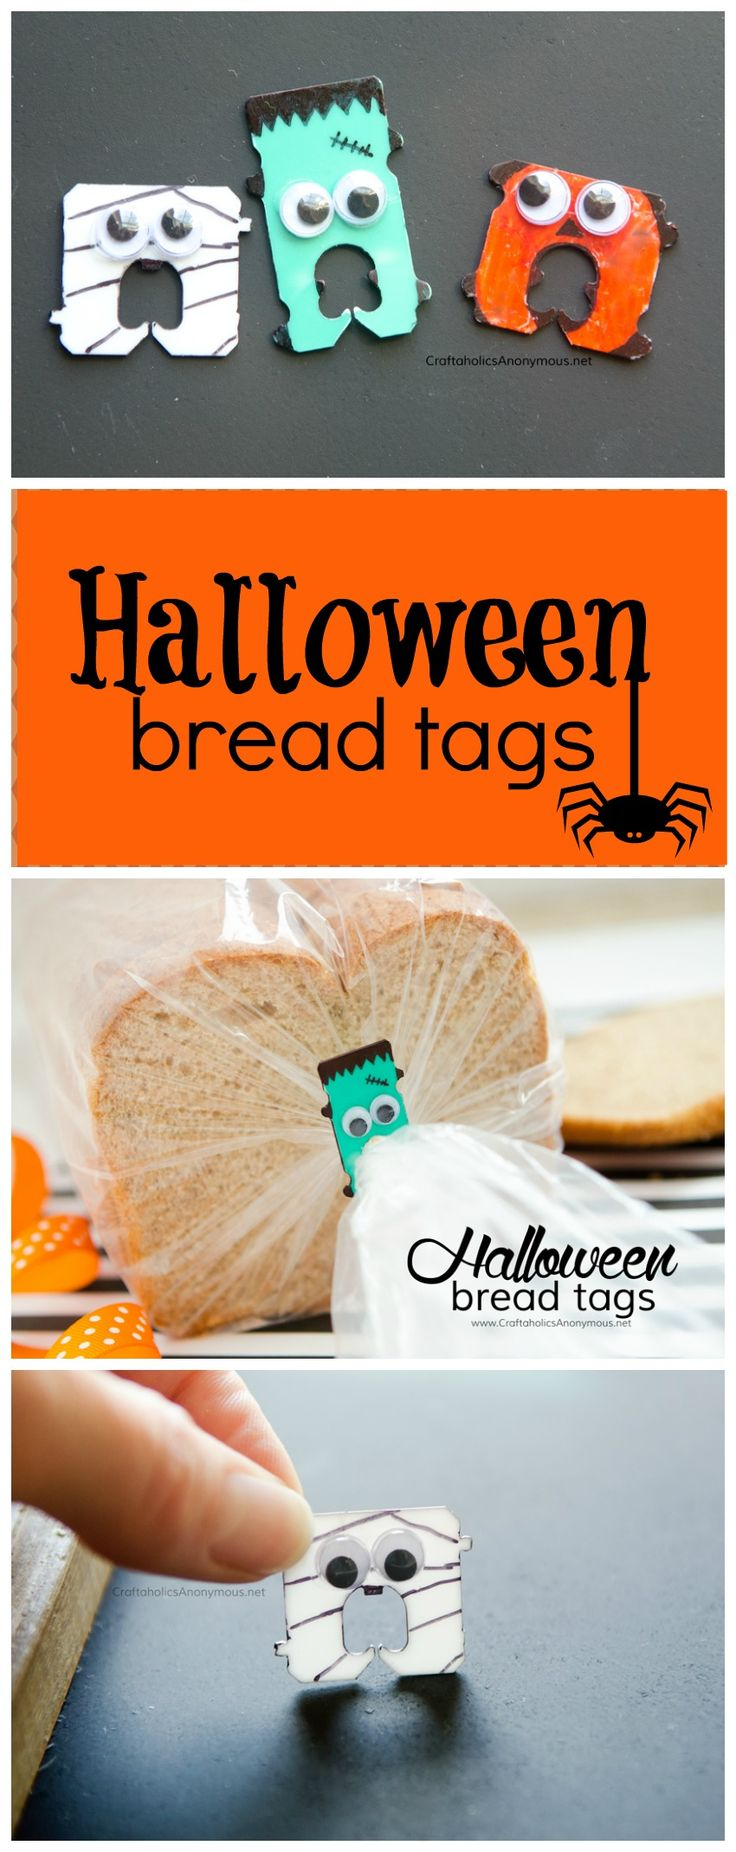 DIY little idea to brighten your halloween spirit! Add them to party favors or h...